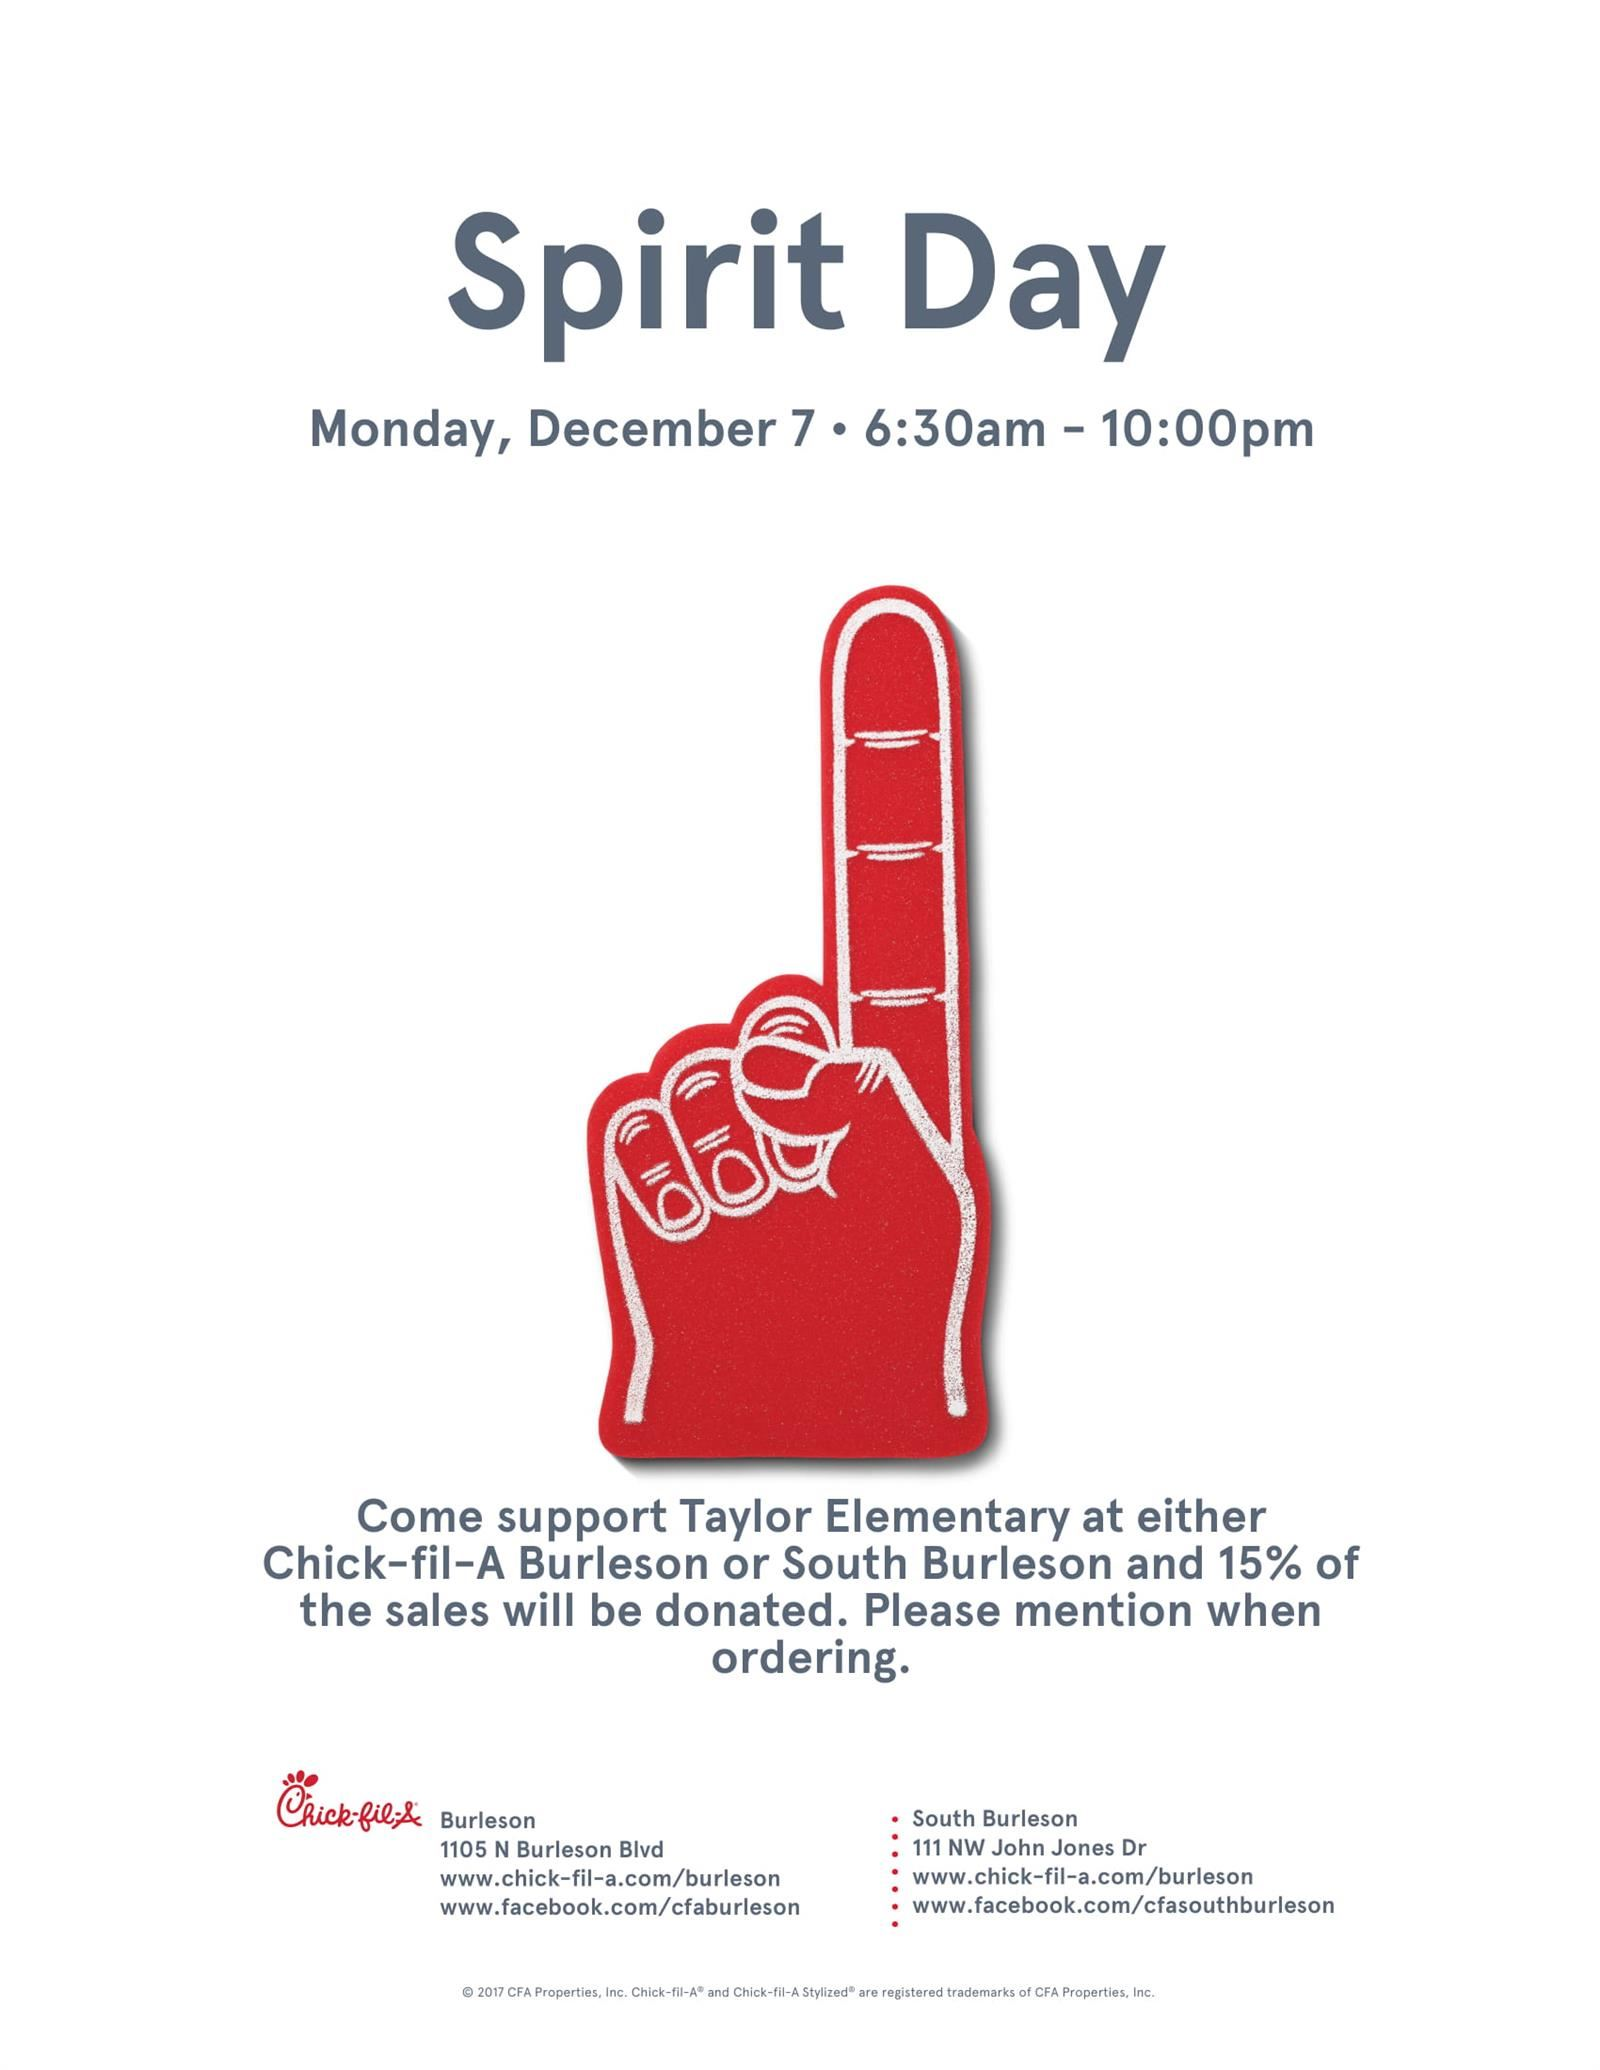 Taylor Chick Fil A Spirit Night - Monday Dec. 7, 6:30 am-10 pm flyer